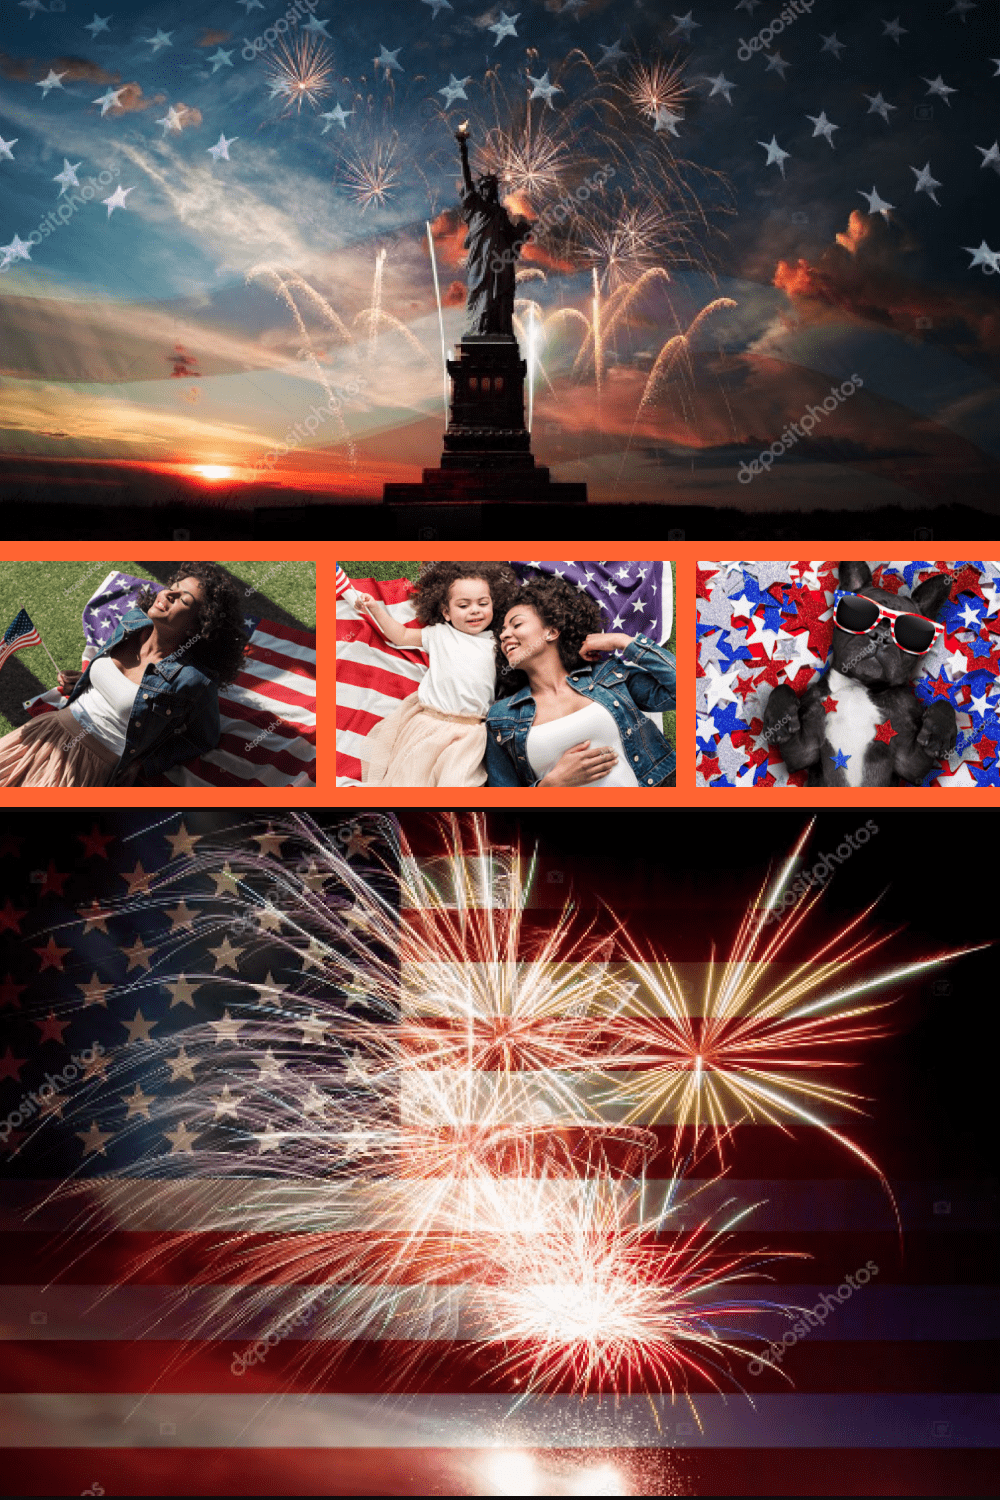 Independence Day Clipart & Photos Collection - 100 Items - MasterBundles - Pinterest Collage Image.